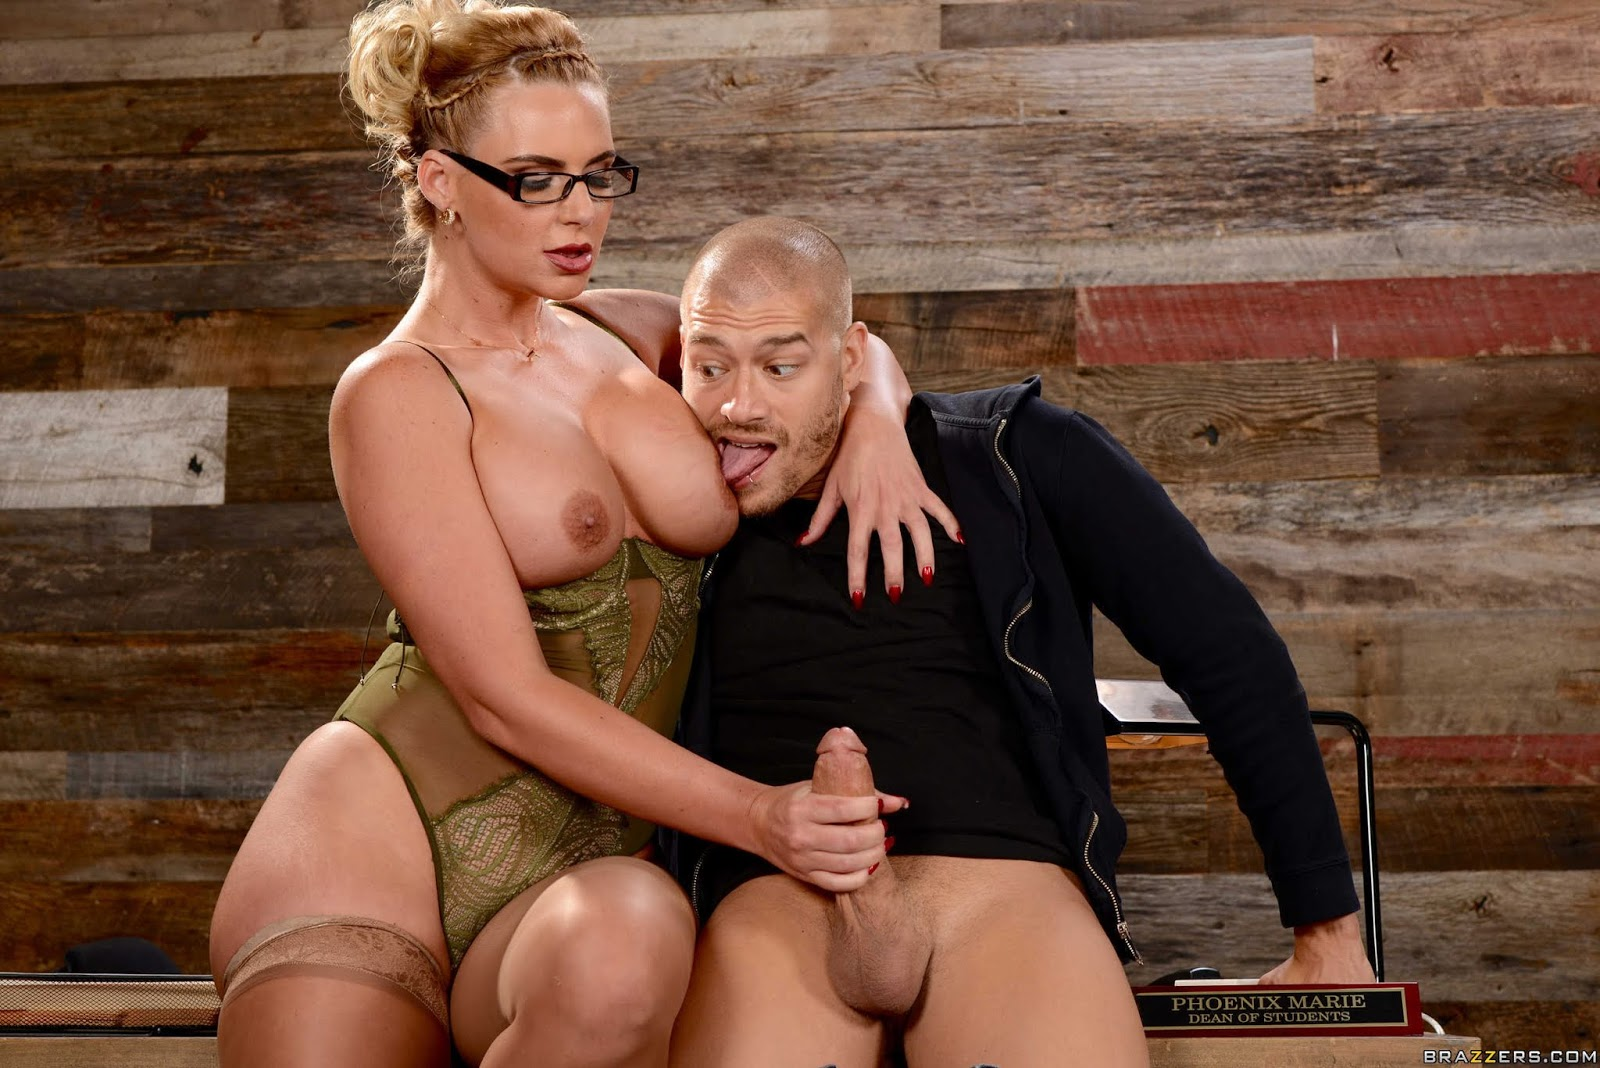 Phoenix-Marie-%3A-Breaking-And-Entering-And-Insertion-%23%23-BRAZZERS-76vw9eeae6.jpg